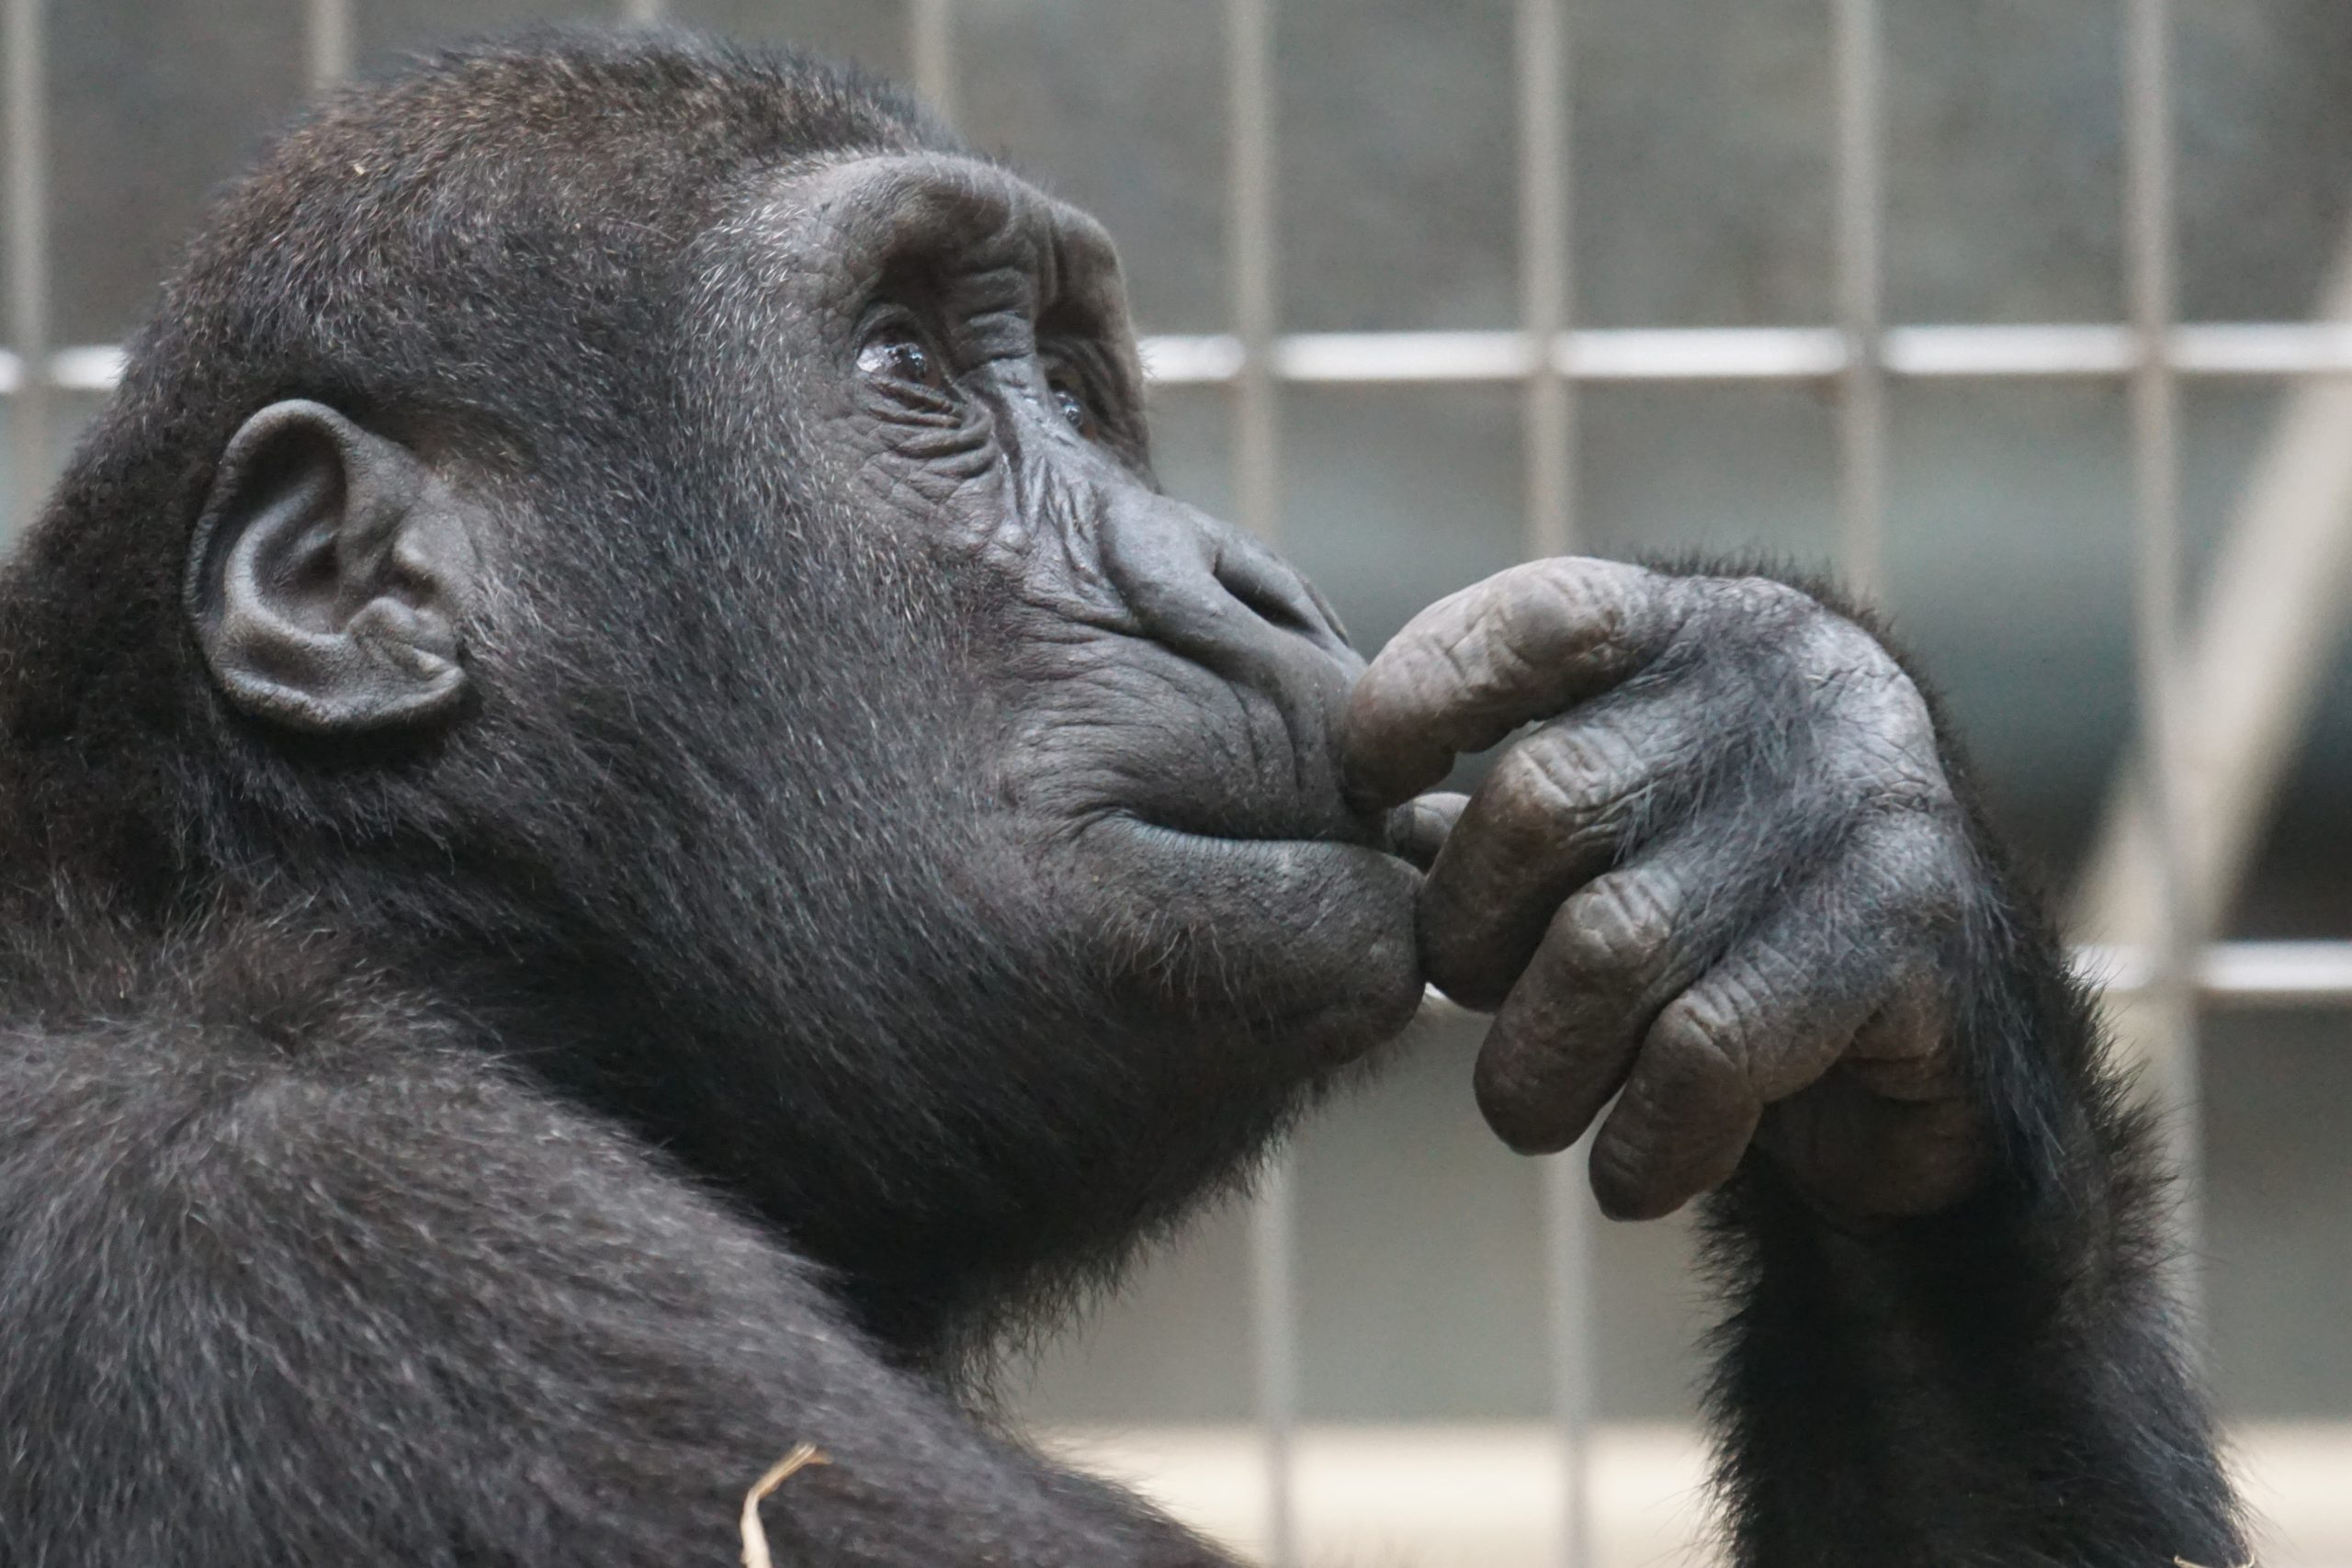 how much dna do we share with chimps